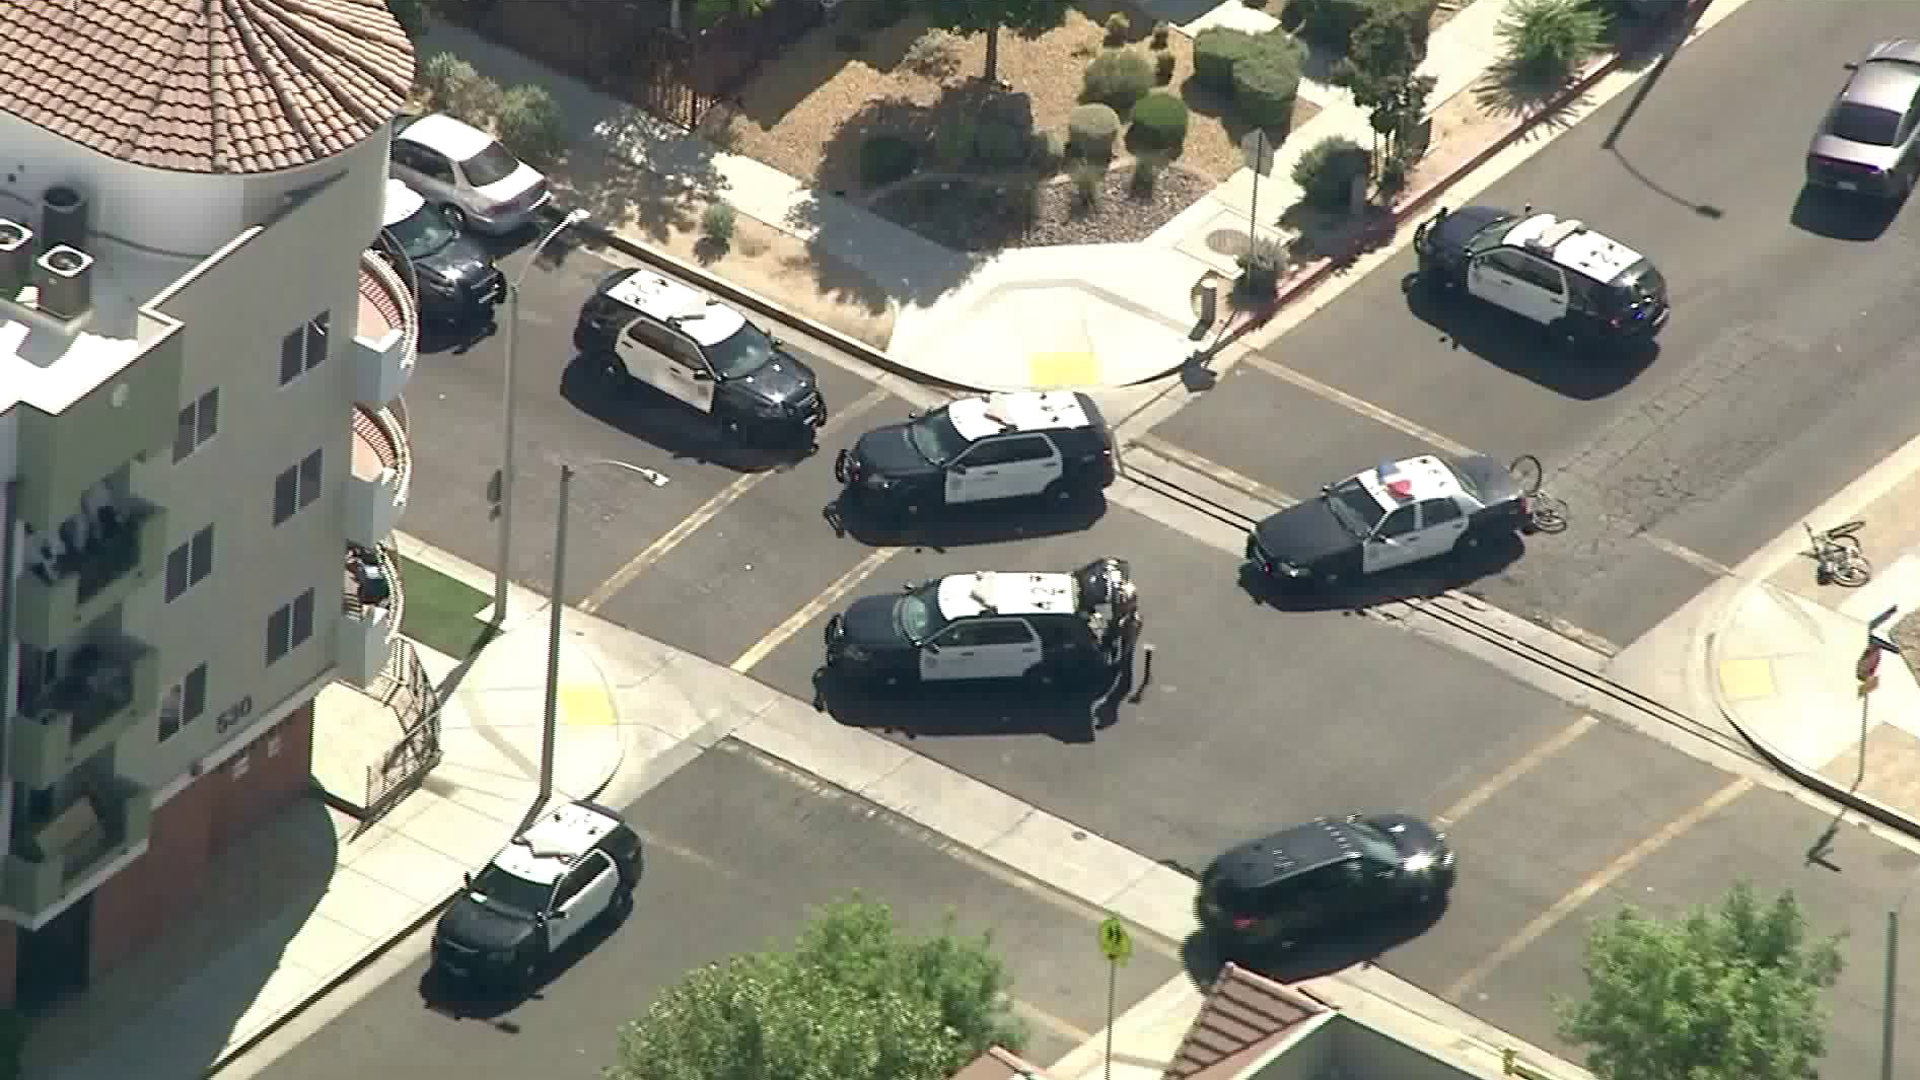 Authorities respond after a sheriff's deputy was shot in Lancaster on Aug. 21, 2019. (Credit: KTLA)